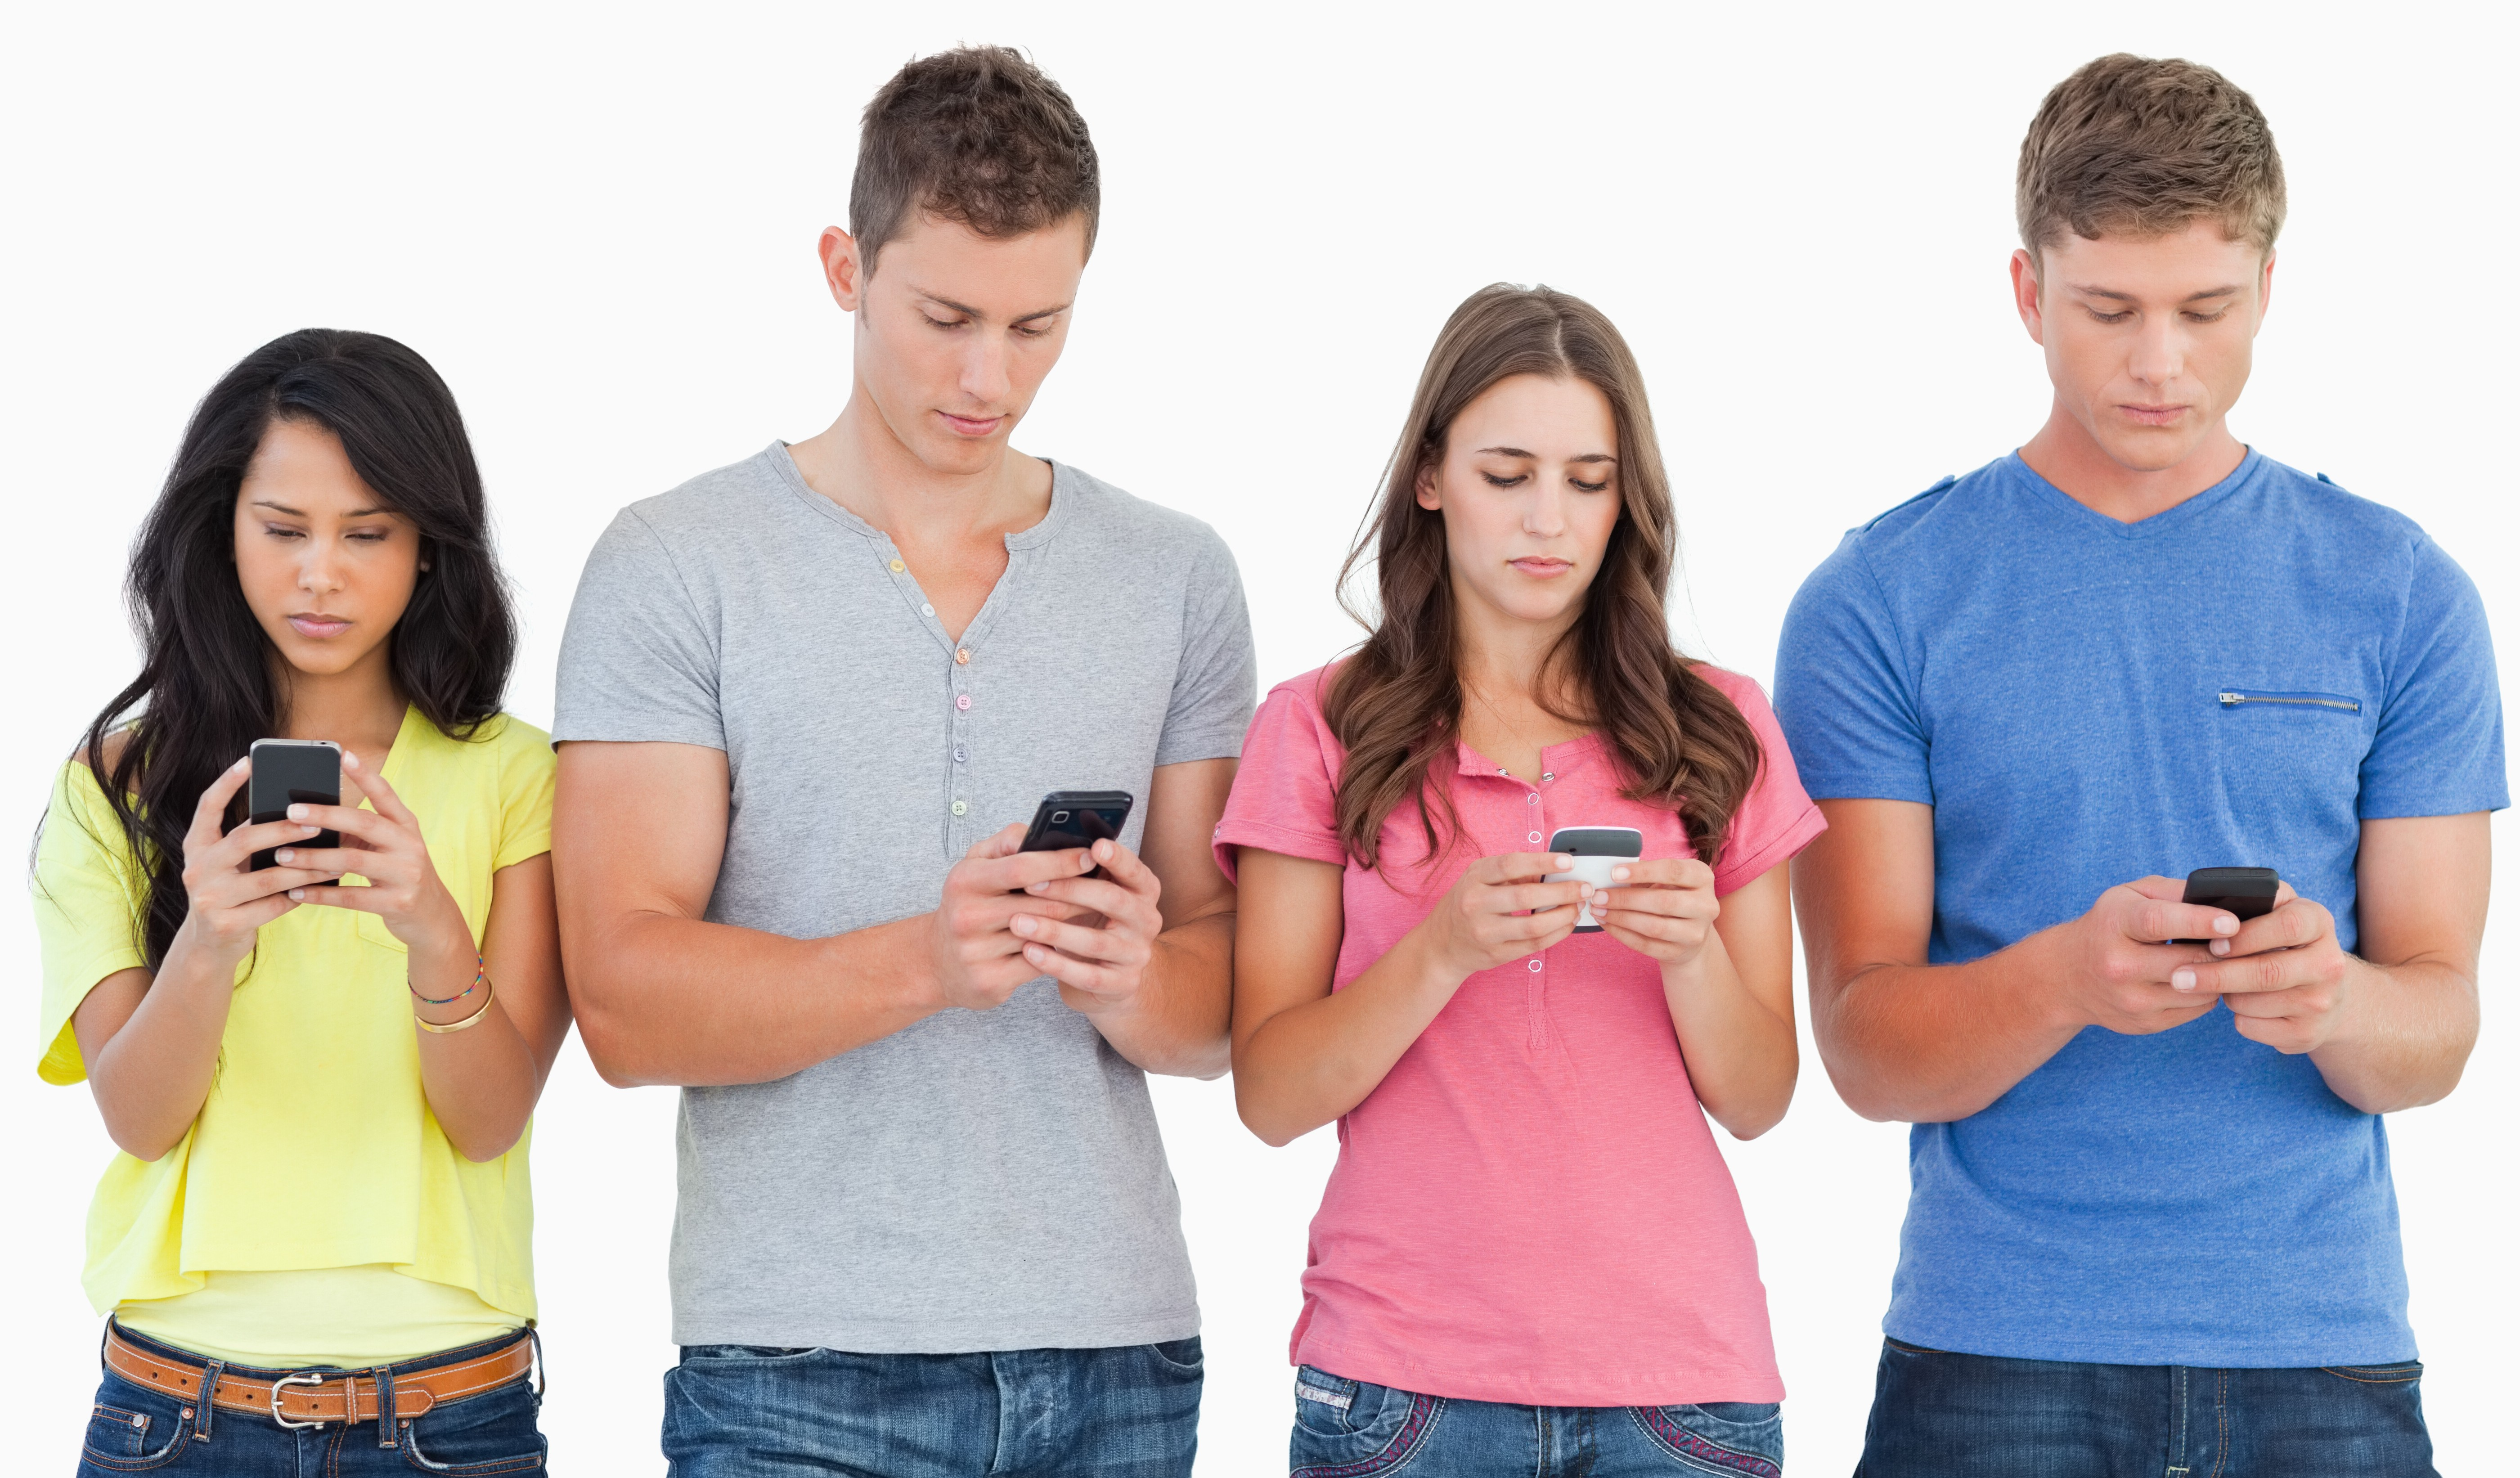 smartphone usage Smartphone usage and adoption has matured, but 47 percent of consumers want less of their devices.